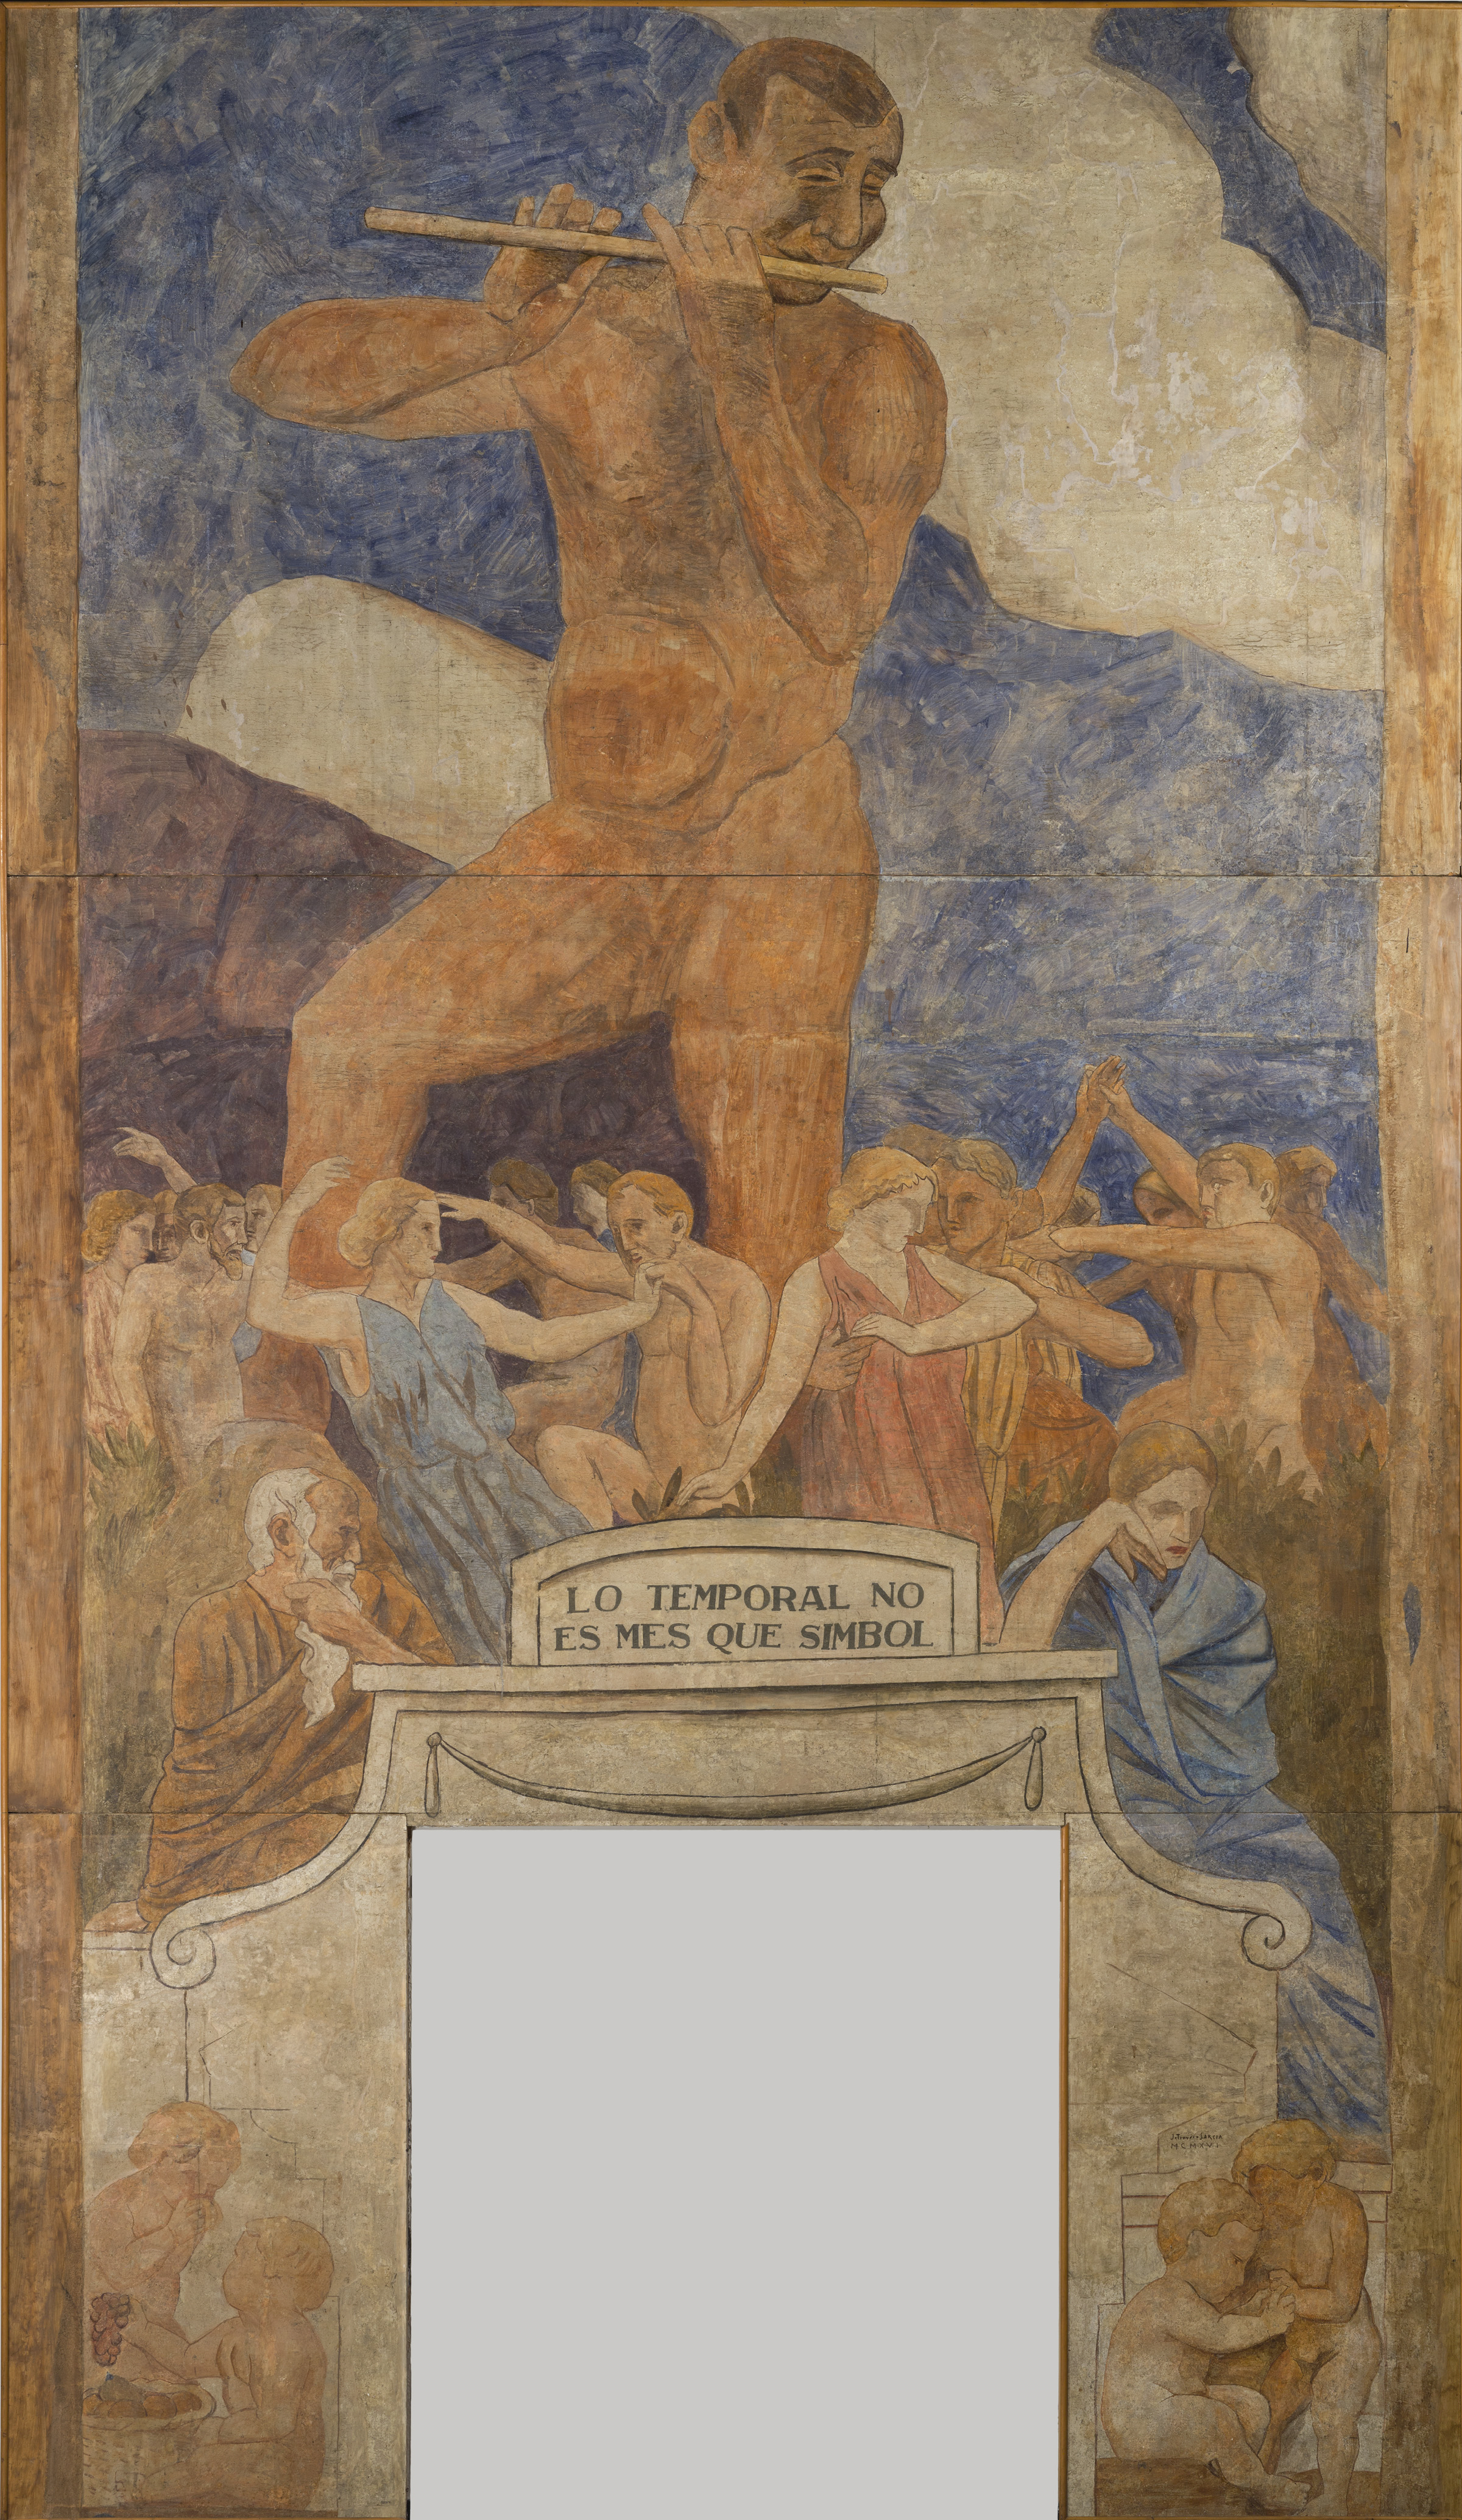 Joaquín Torres-García (Uruguayan. 1874–1949). Lo temporal no és més que símbol (The temporal is no more than symbol). 1916. Fresco transferred to canvas mounted on strainer, 226 3/8 × 130 5/16″ (575 × 331 cm). Generalitat de Catalunya Fons d'Art. © Sucesión Joaquín Torres-García, Montevideo 2015. Photo credit: Ramon Maroto. Centre de Restauració de Béns Mobles de Catalunya, CRBMC. Generalitat de Catalunya.